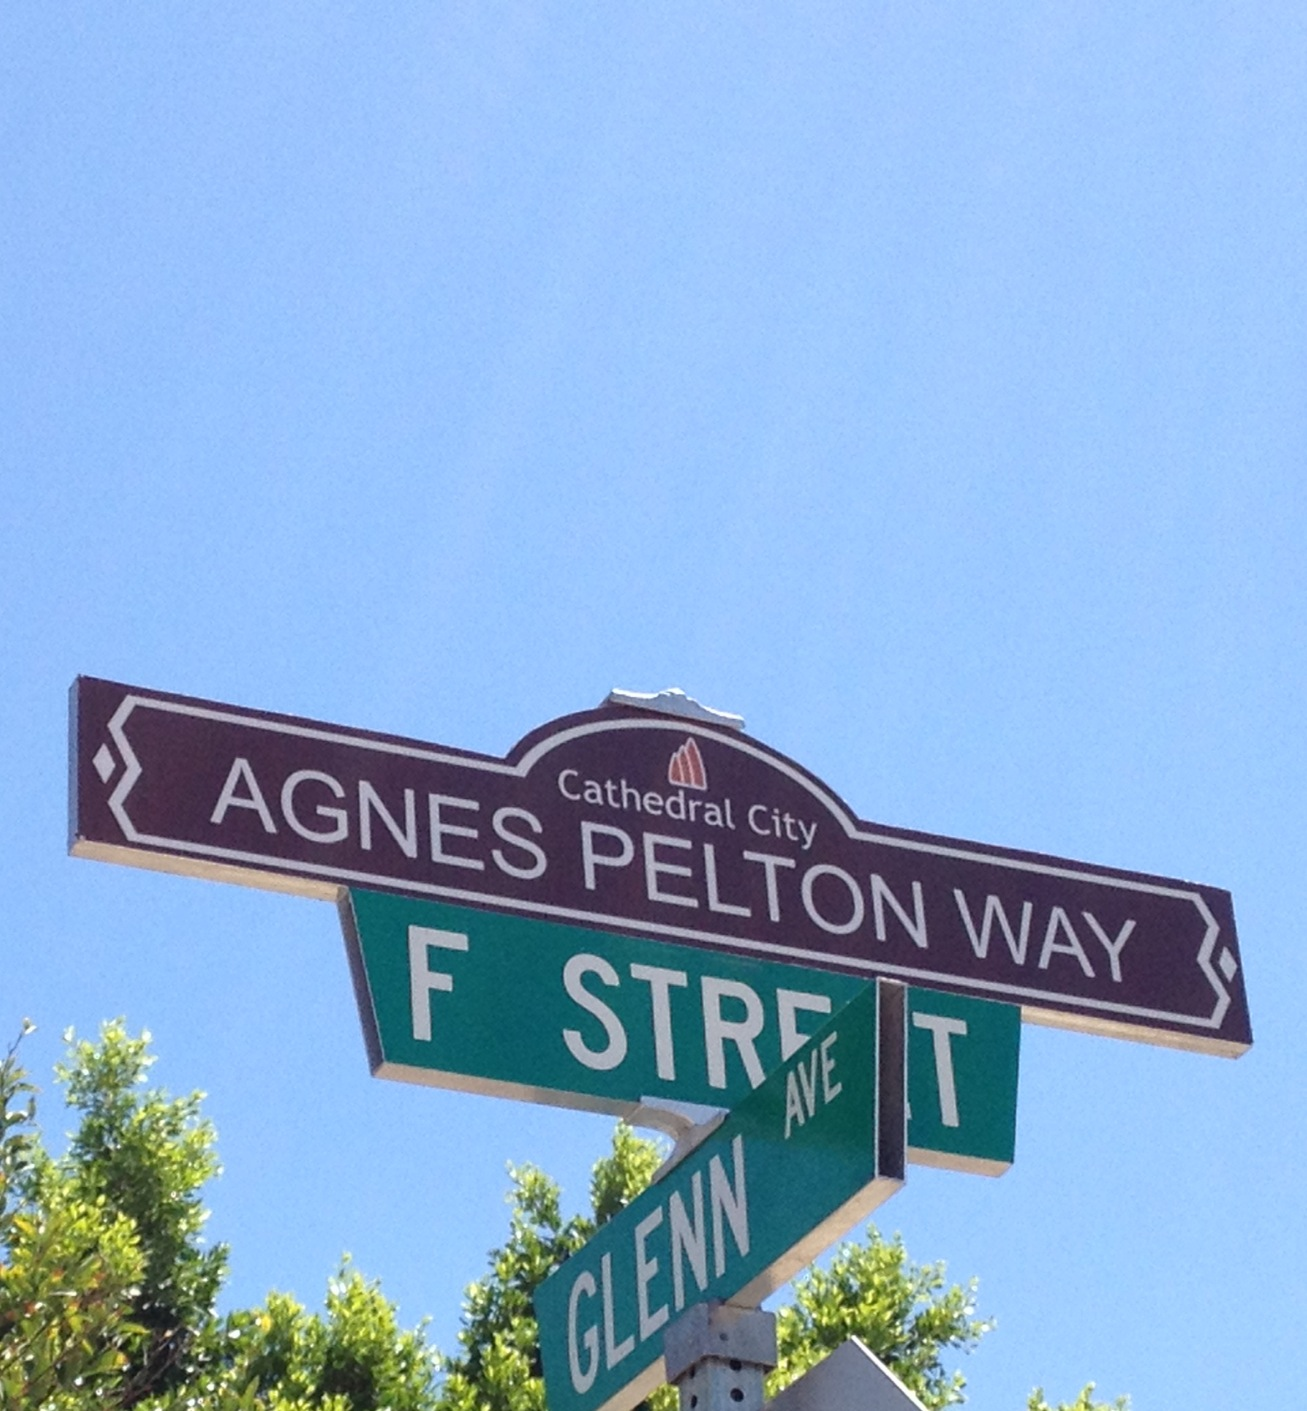 Agnes Pelton Way, Death Valley 49ers, Morongo Art Tours, etc.